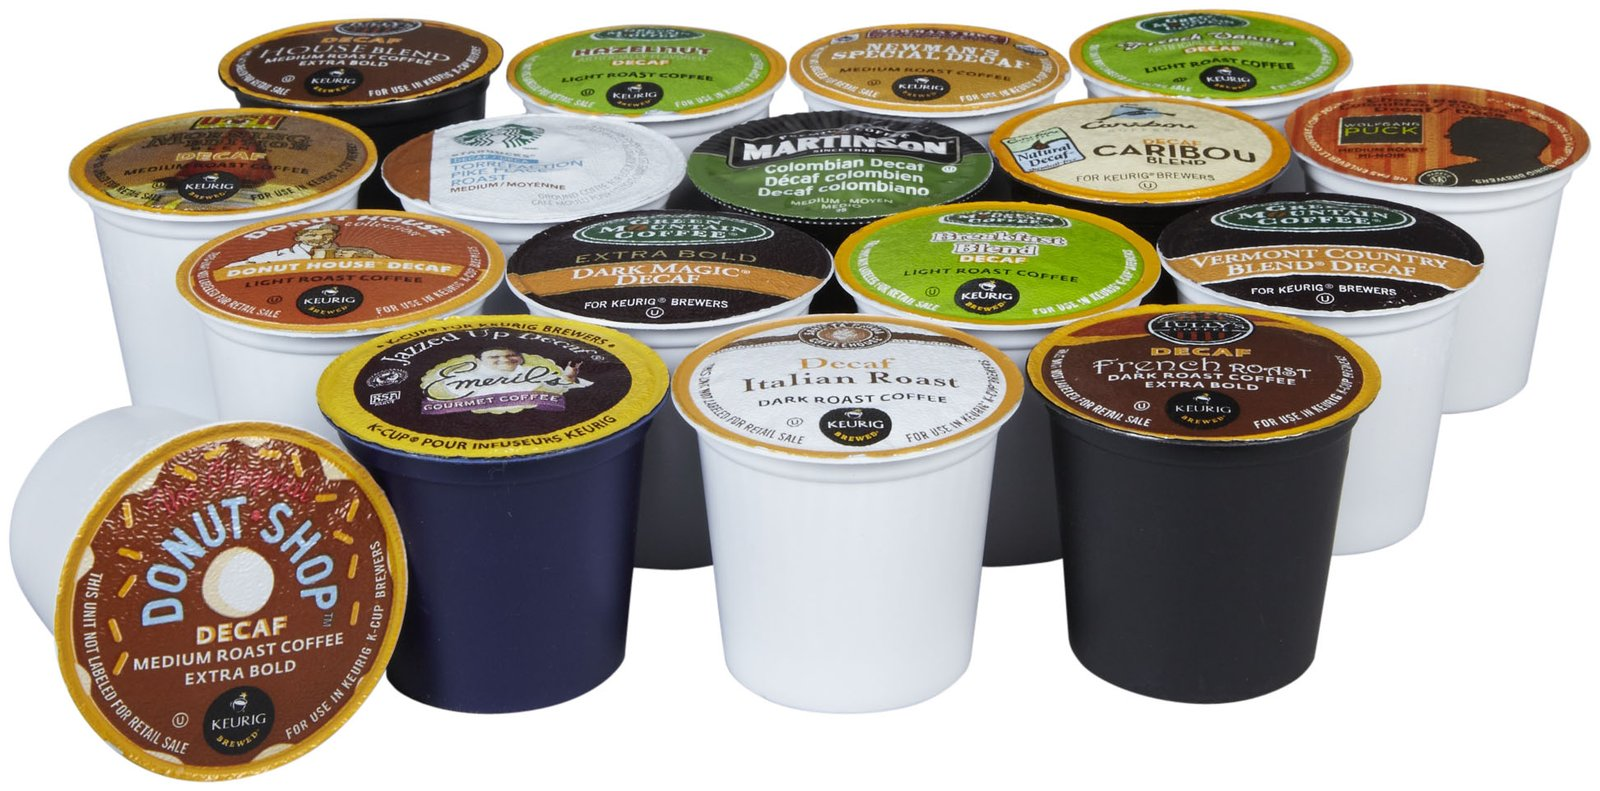 Kill the K-Cup – Impact of Materials on Society